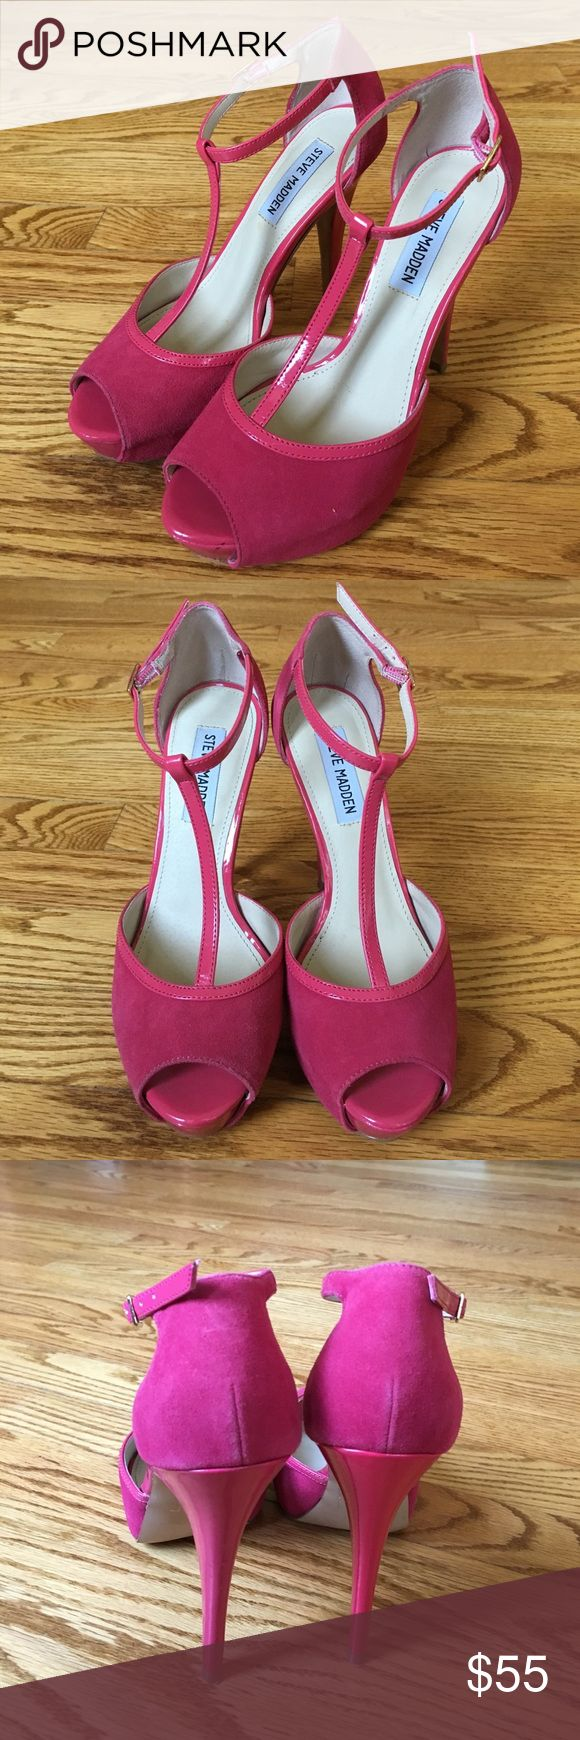 Steve Madden Hot Pink Heels Worn once! These statement heels can be great for many occasions! Leather upper piece and suede near toes and heel. Steve Madden Shoes Heels